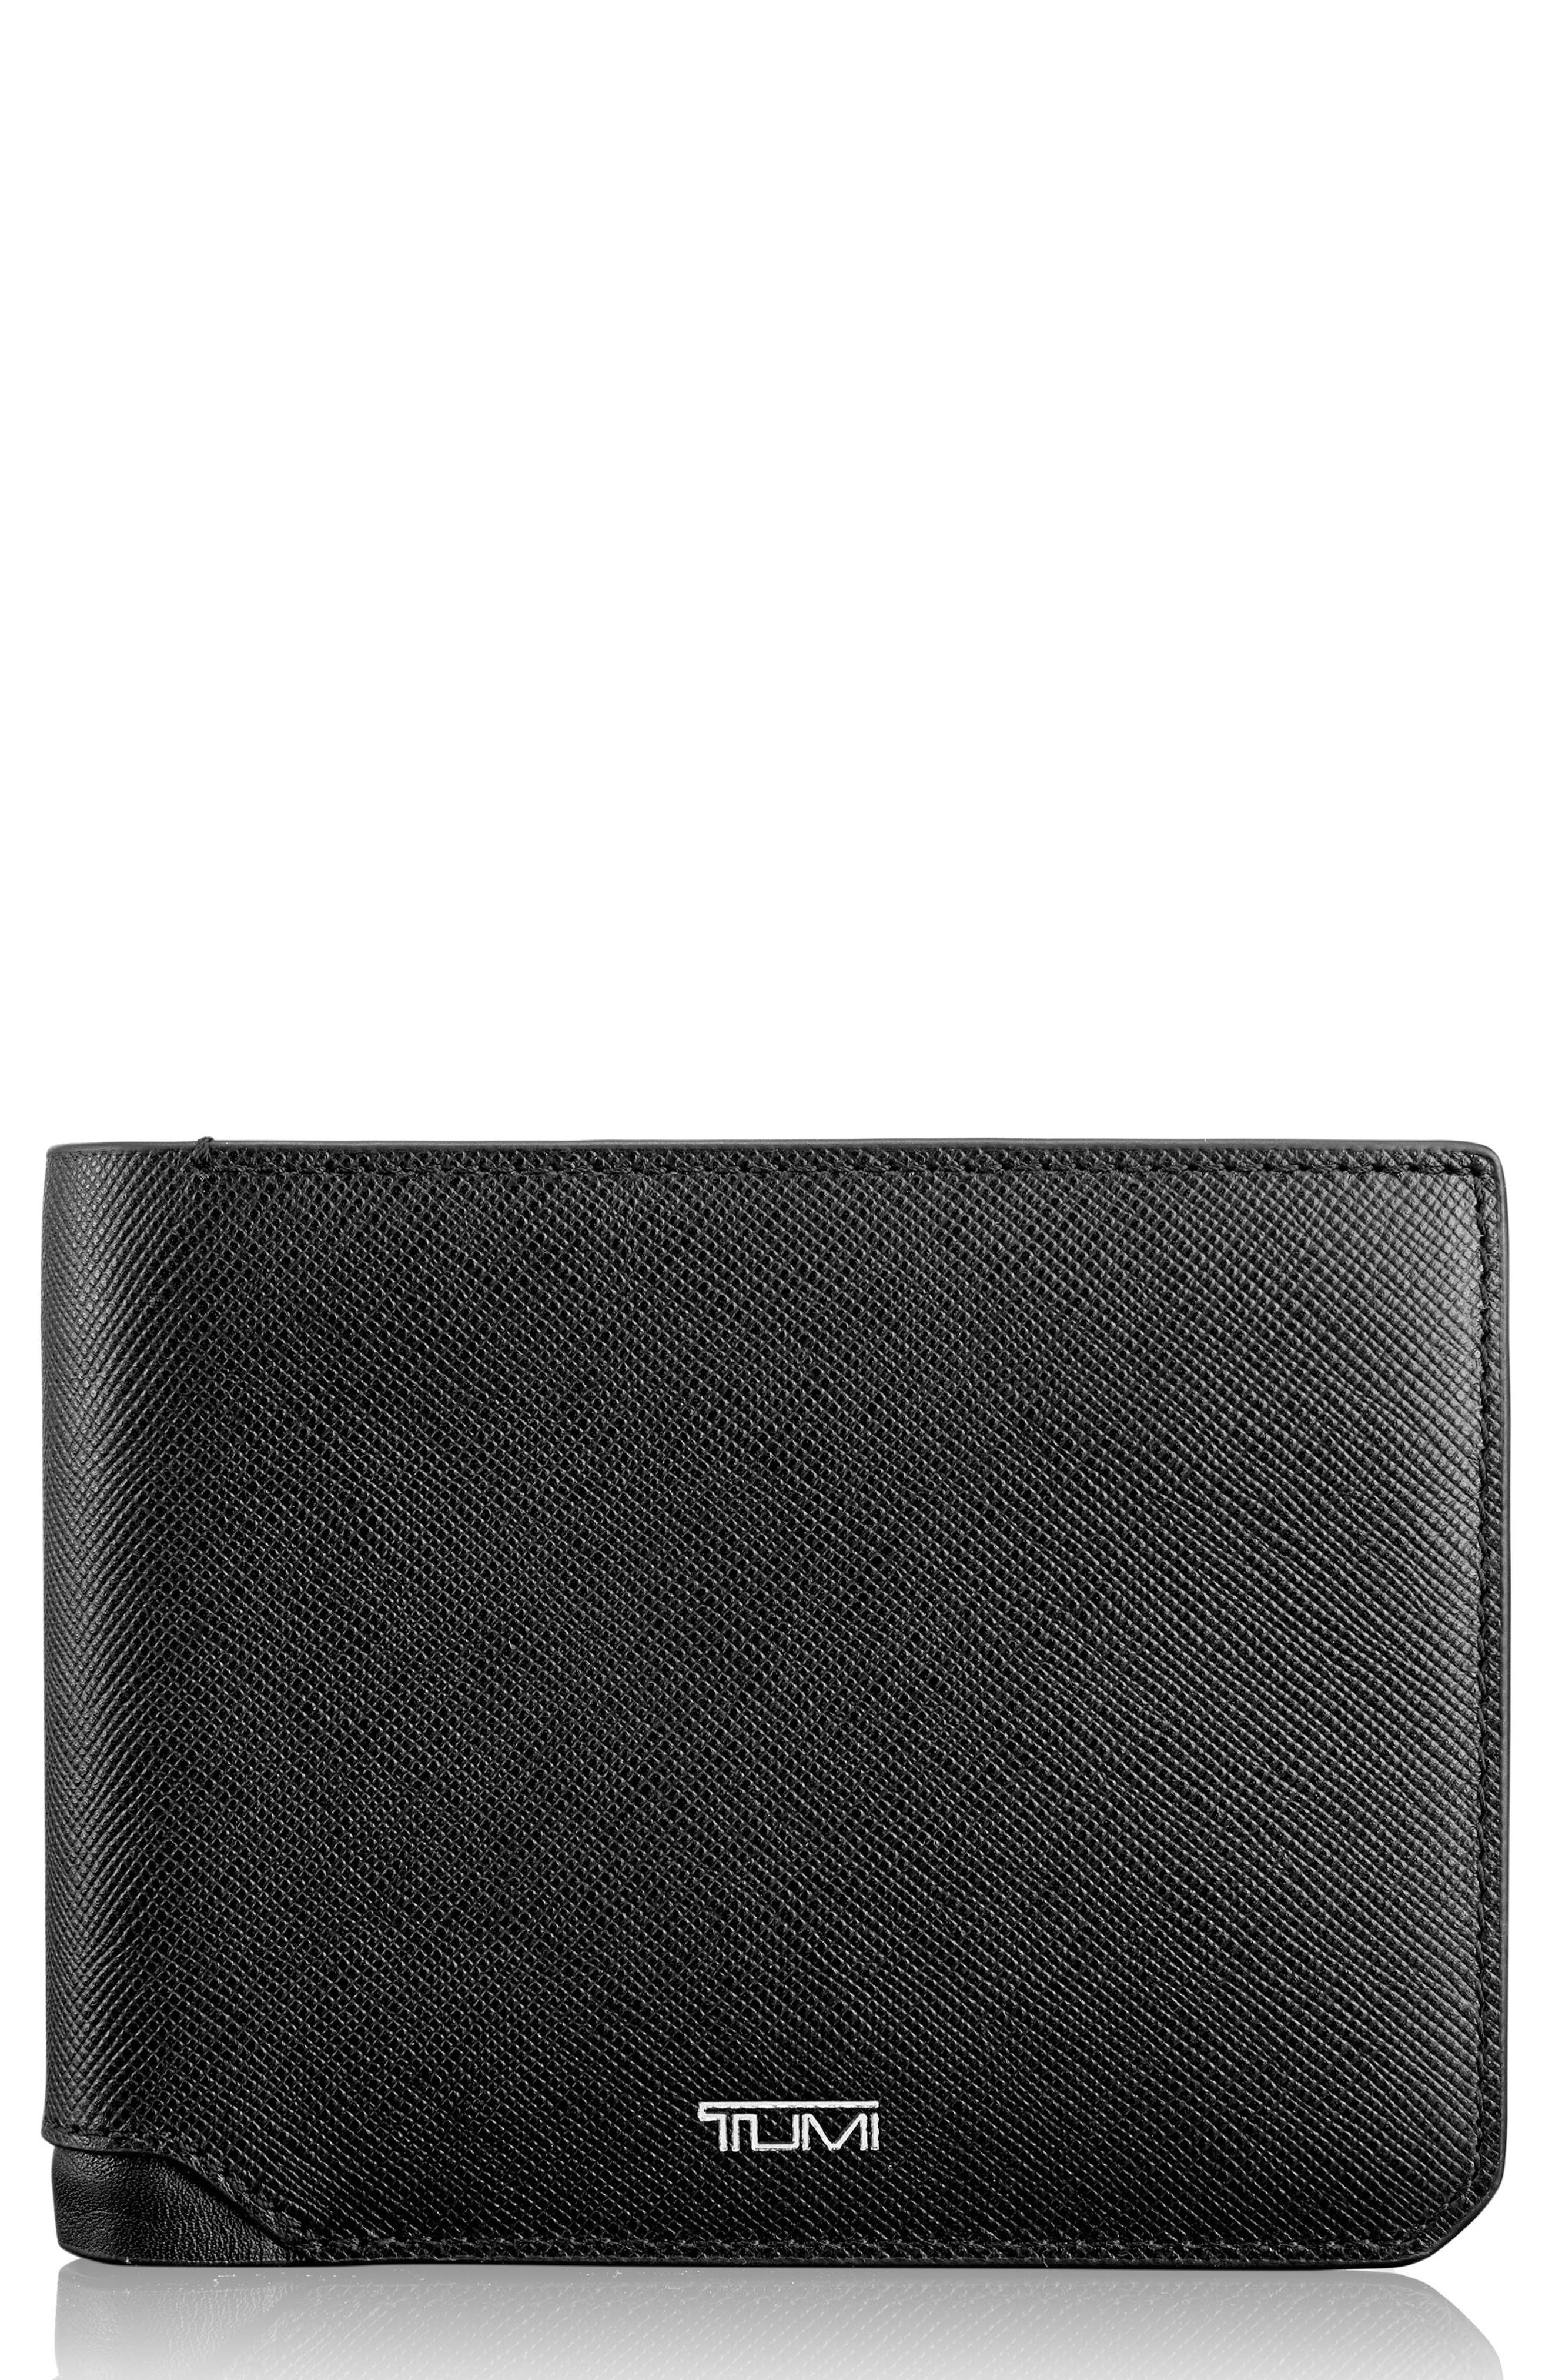 Leather Wallet,                             Alternate thumbnail 2, color,                             001